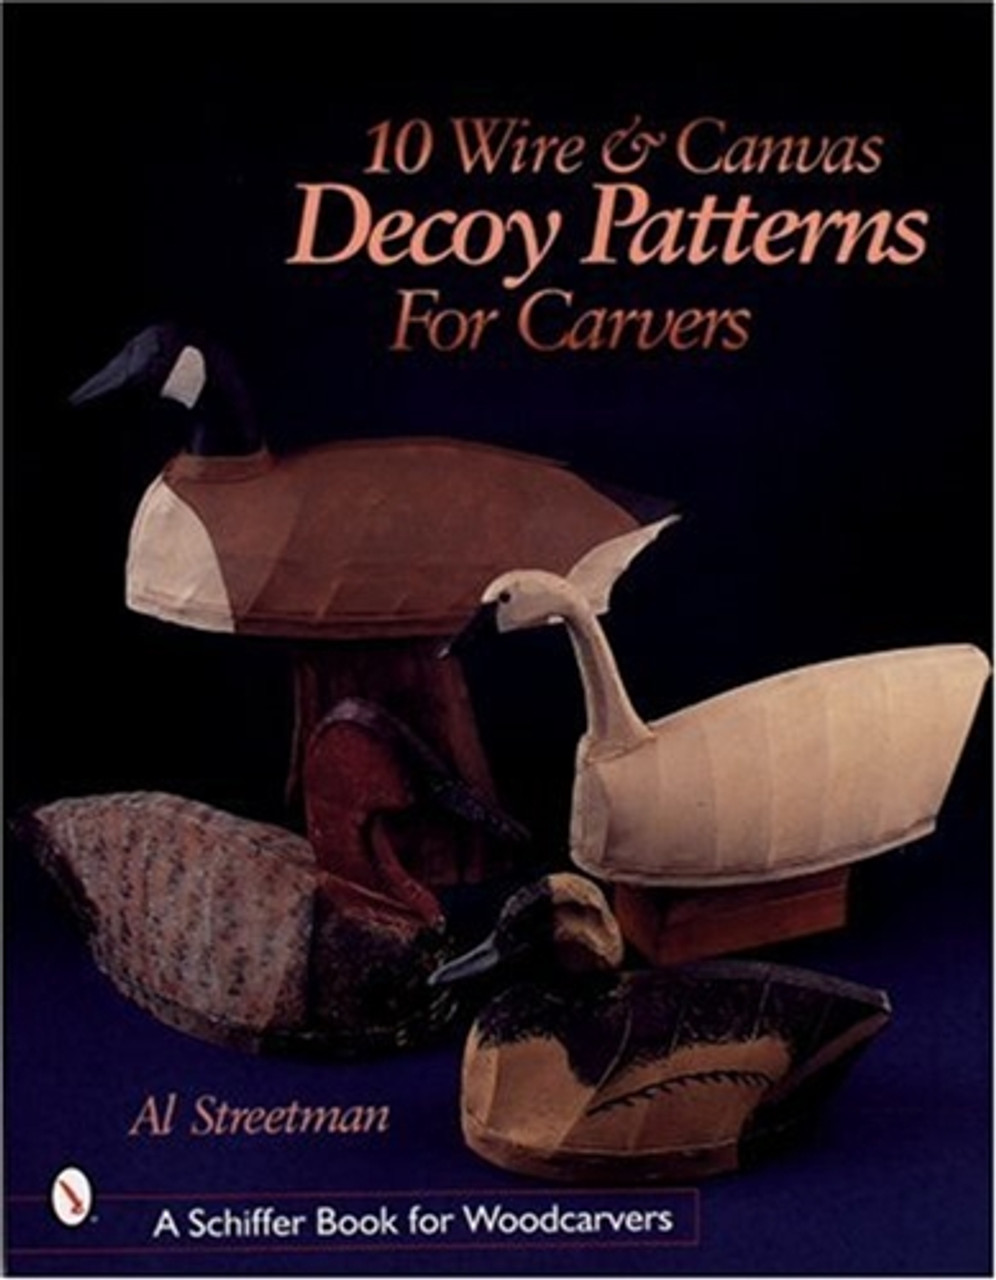 10 Wire and Canvas Decoy Patterns For Carvers